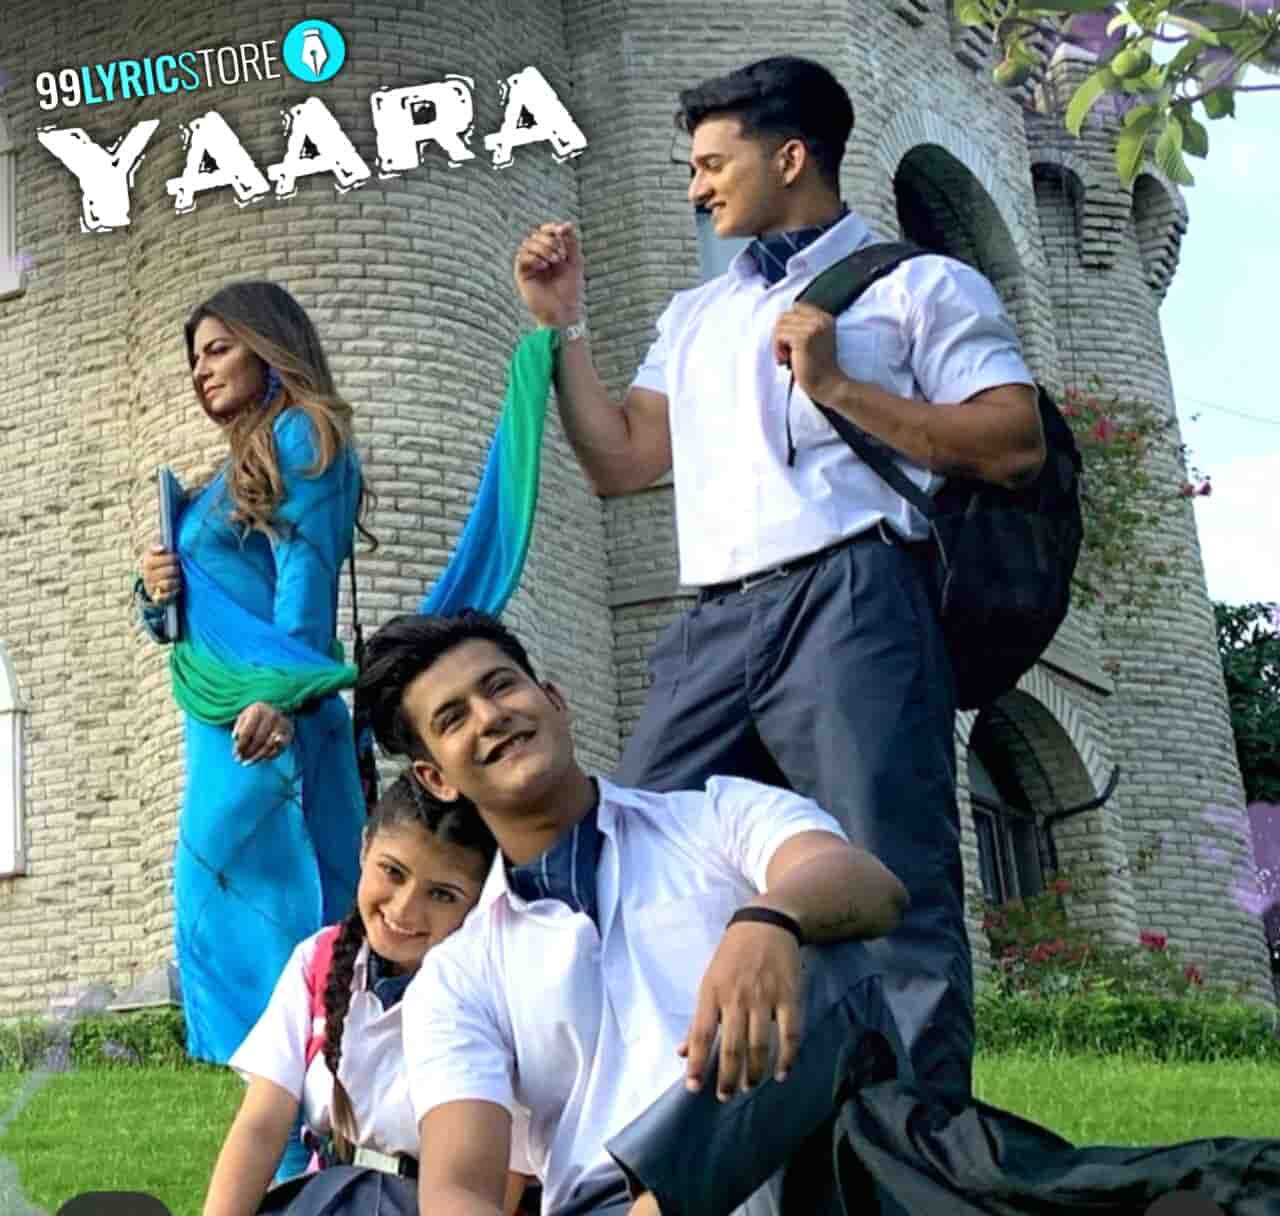 Yaara love Hindi song sung by Mamta Sharma